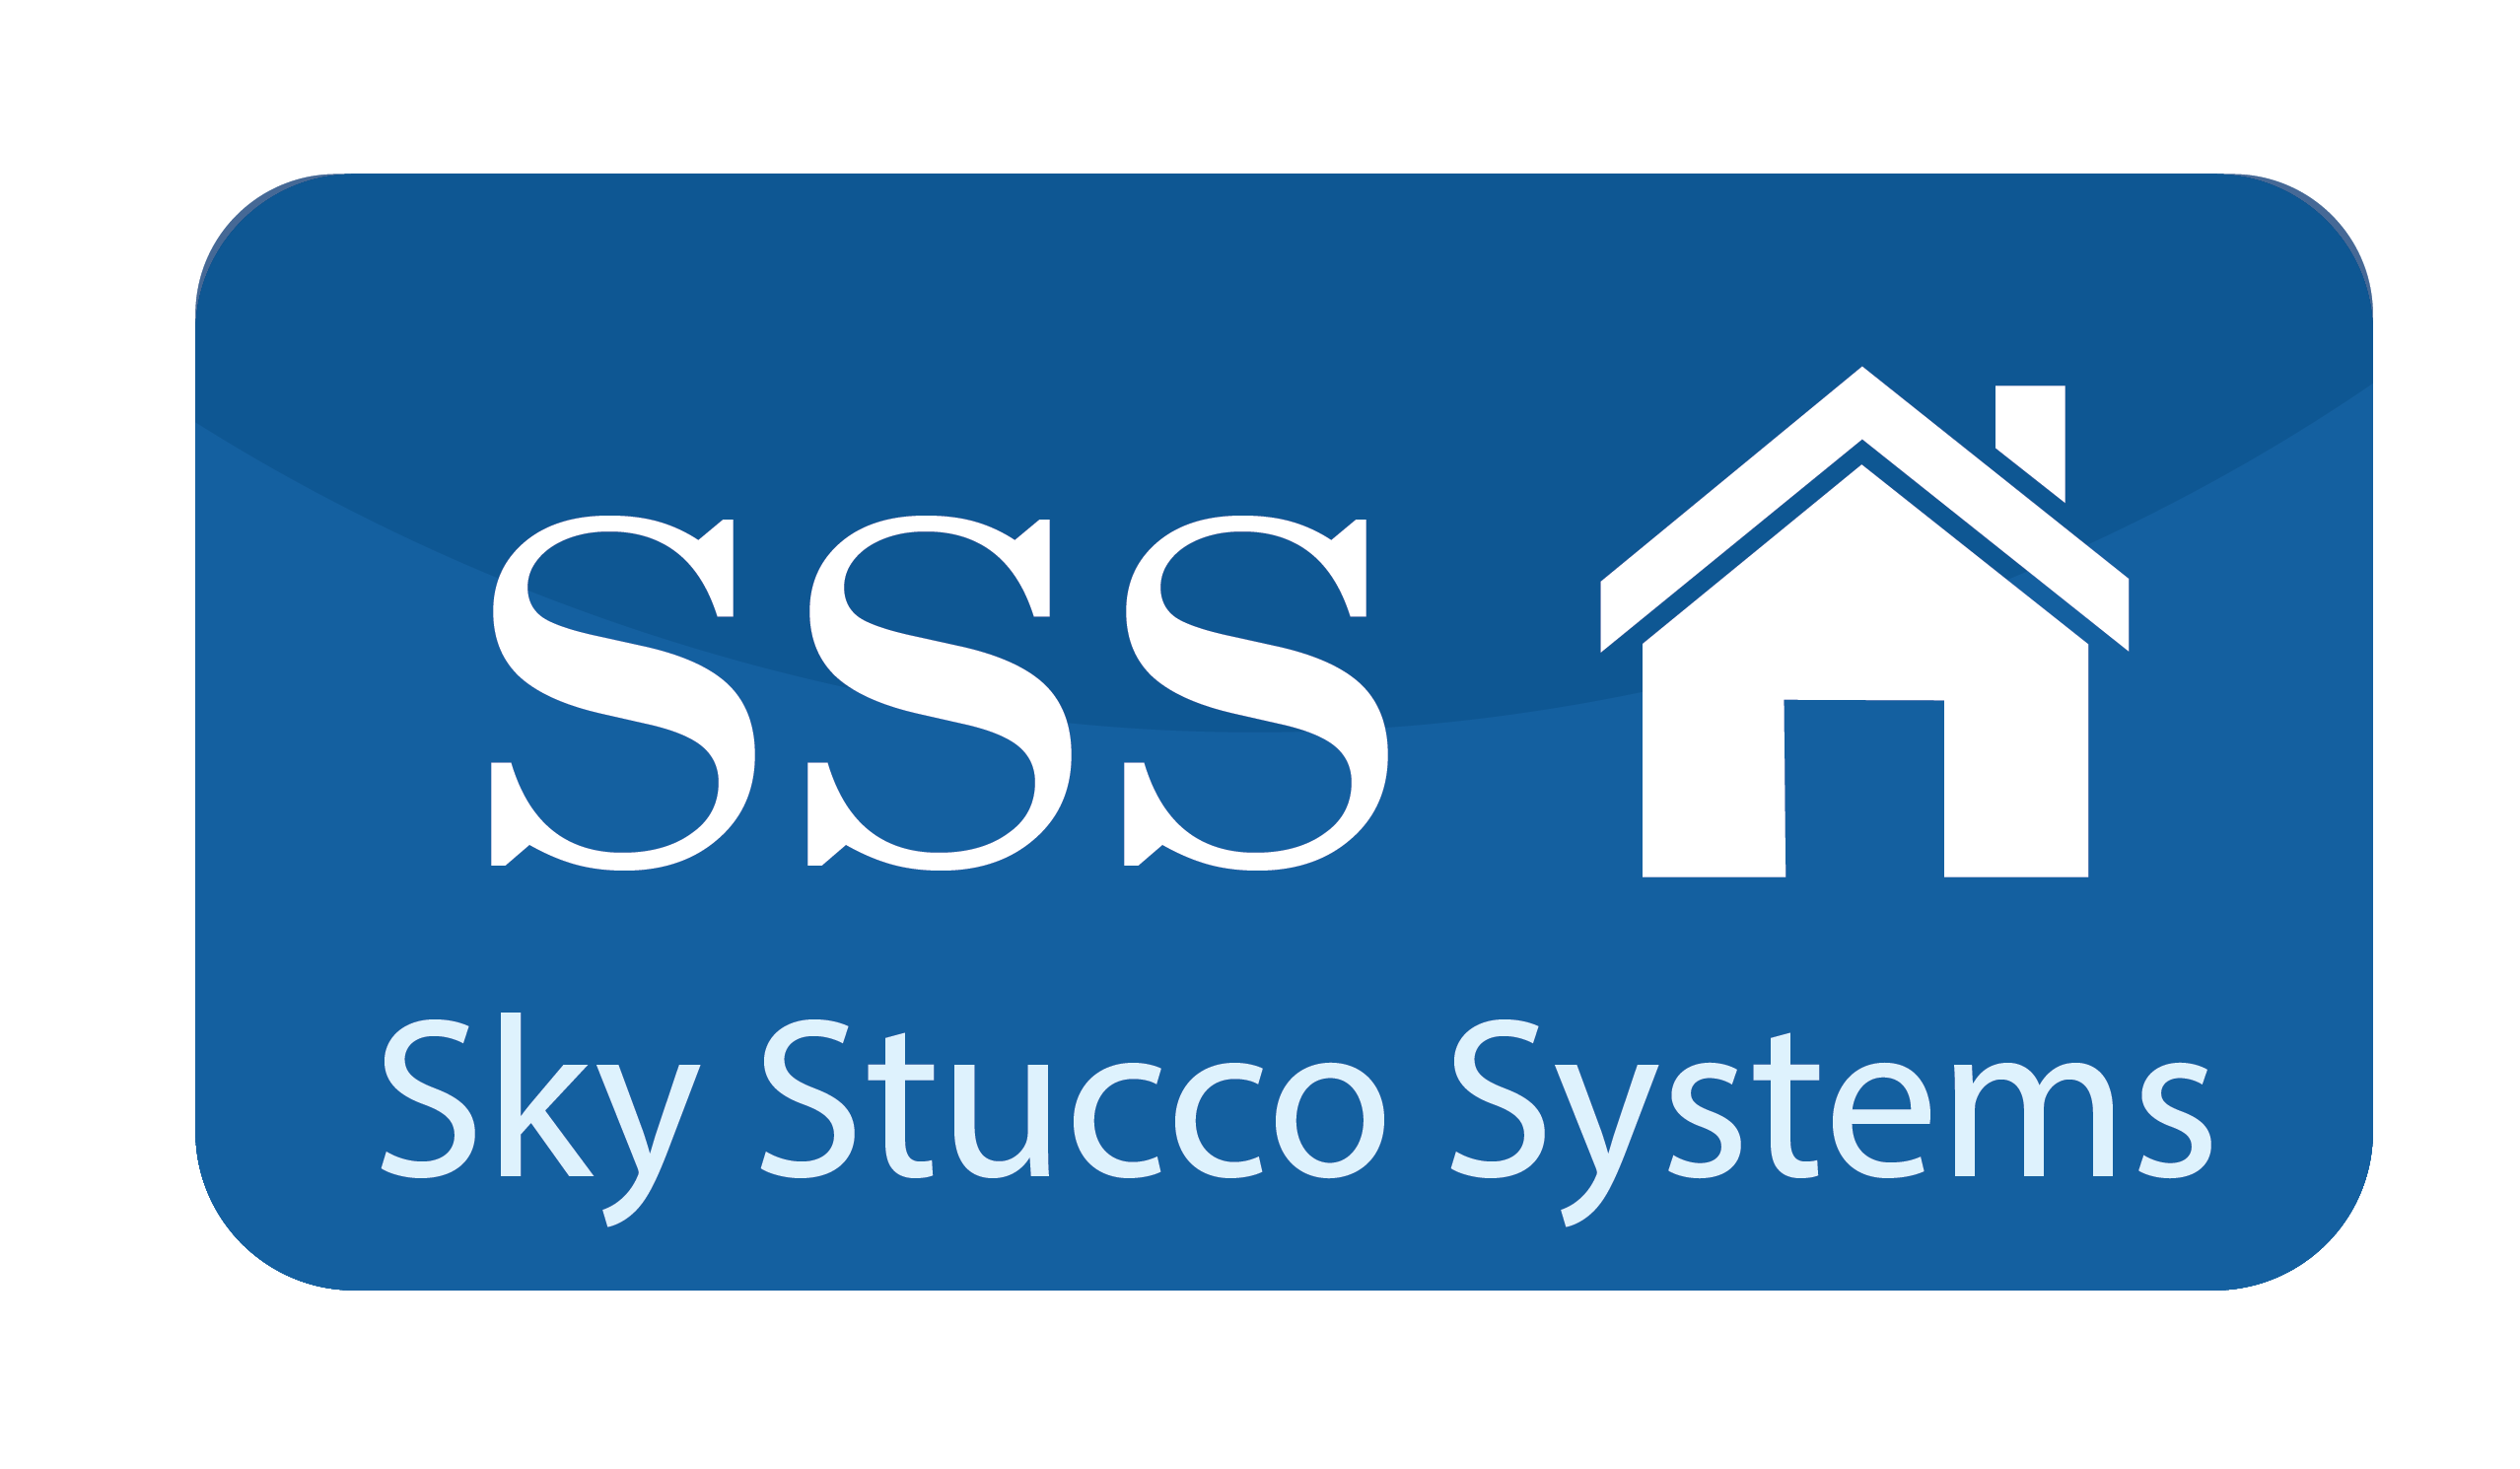 Sky Stucco Systems